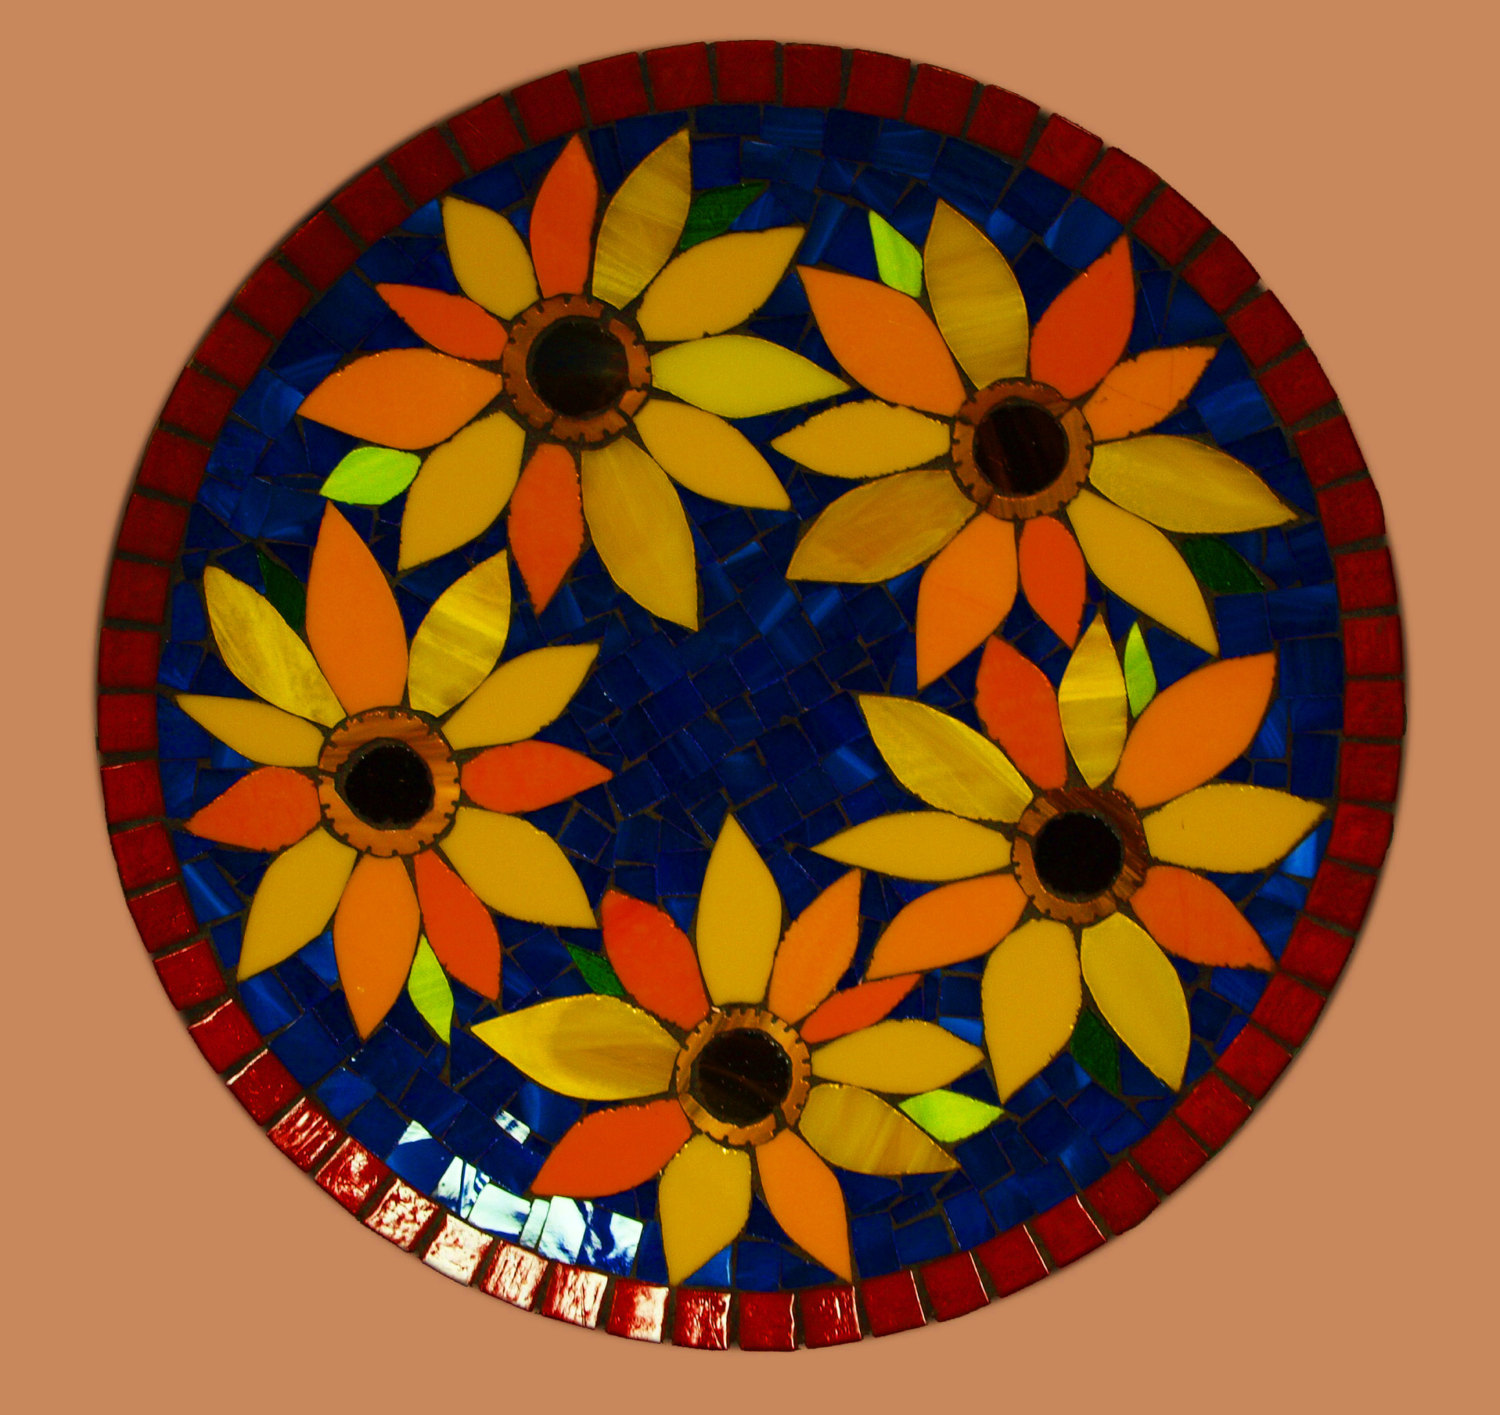 Van Gogh Sunflower Tribute Platter